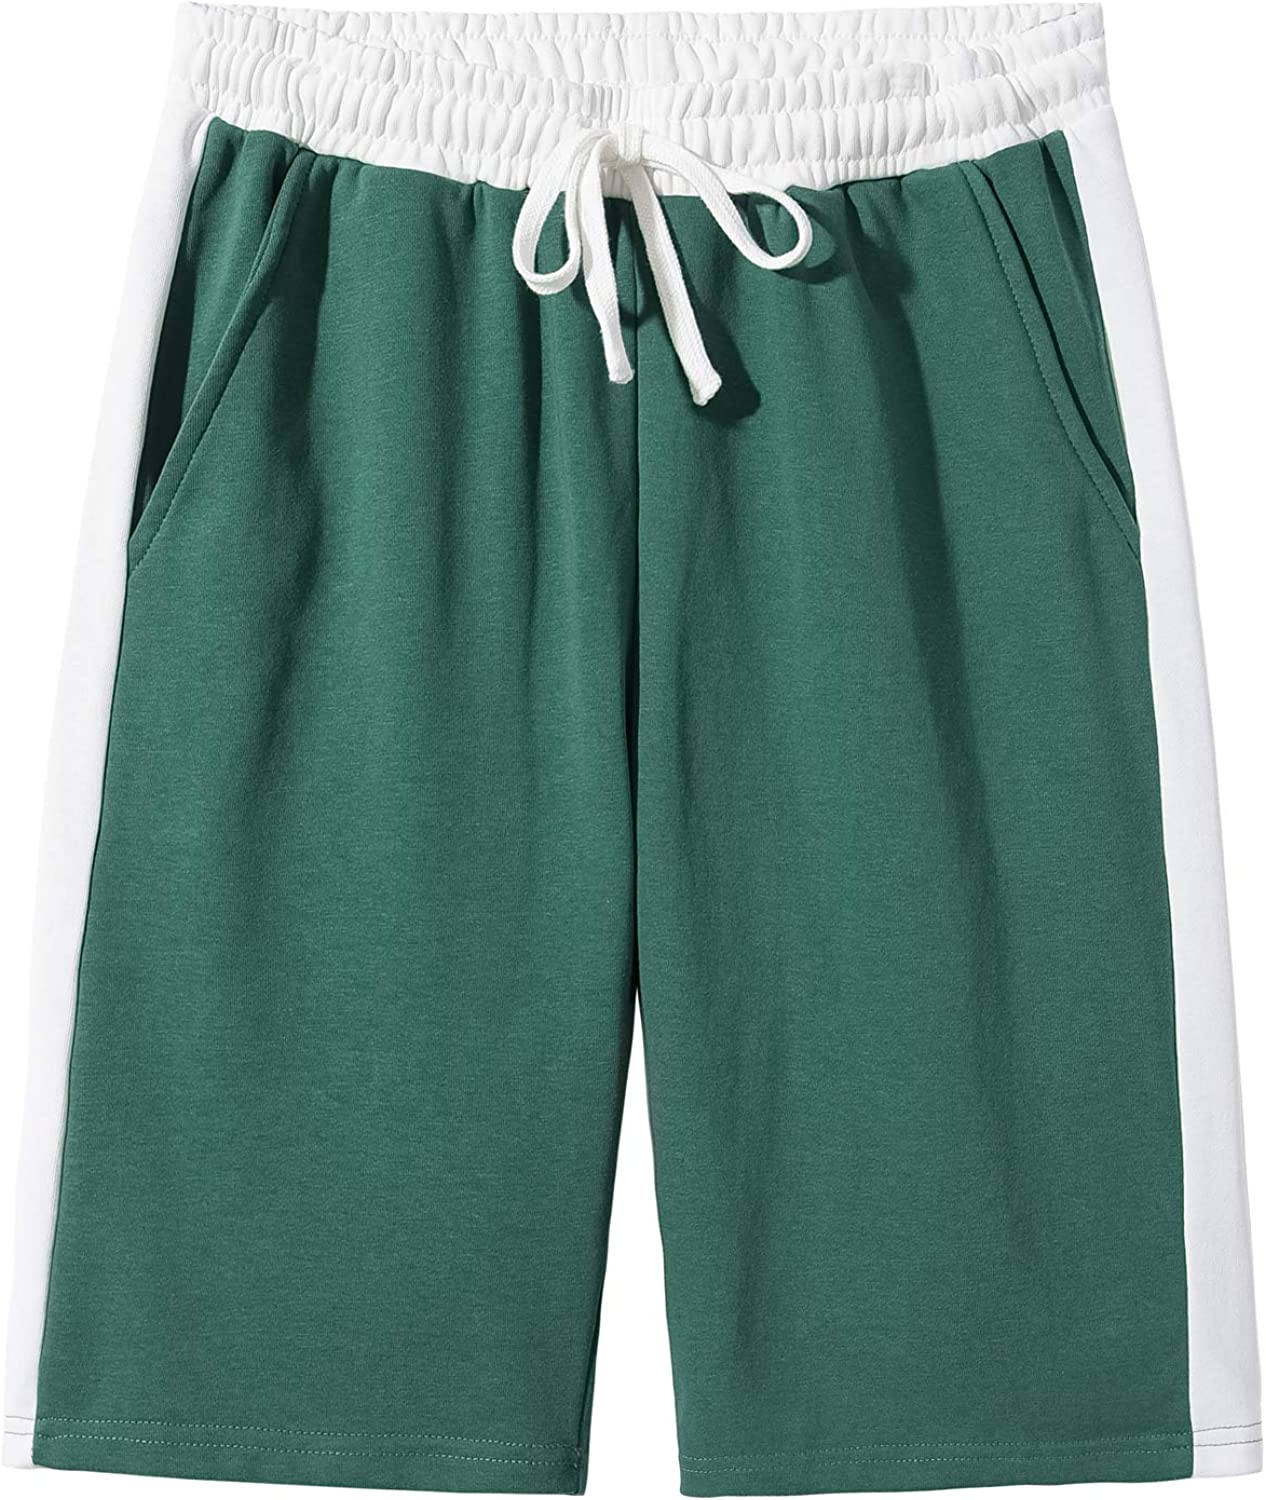 LOCALMODE Mens Workout Classic Fit Elastic Casual Cotton Jogger Active Shorts with Pockets